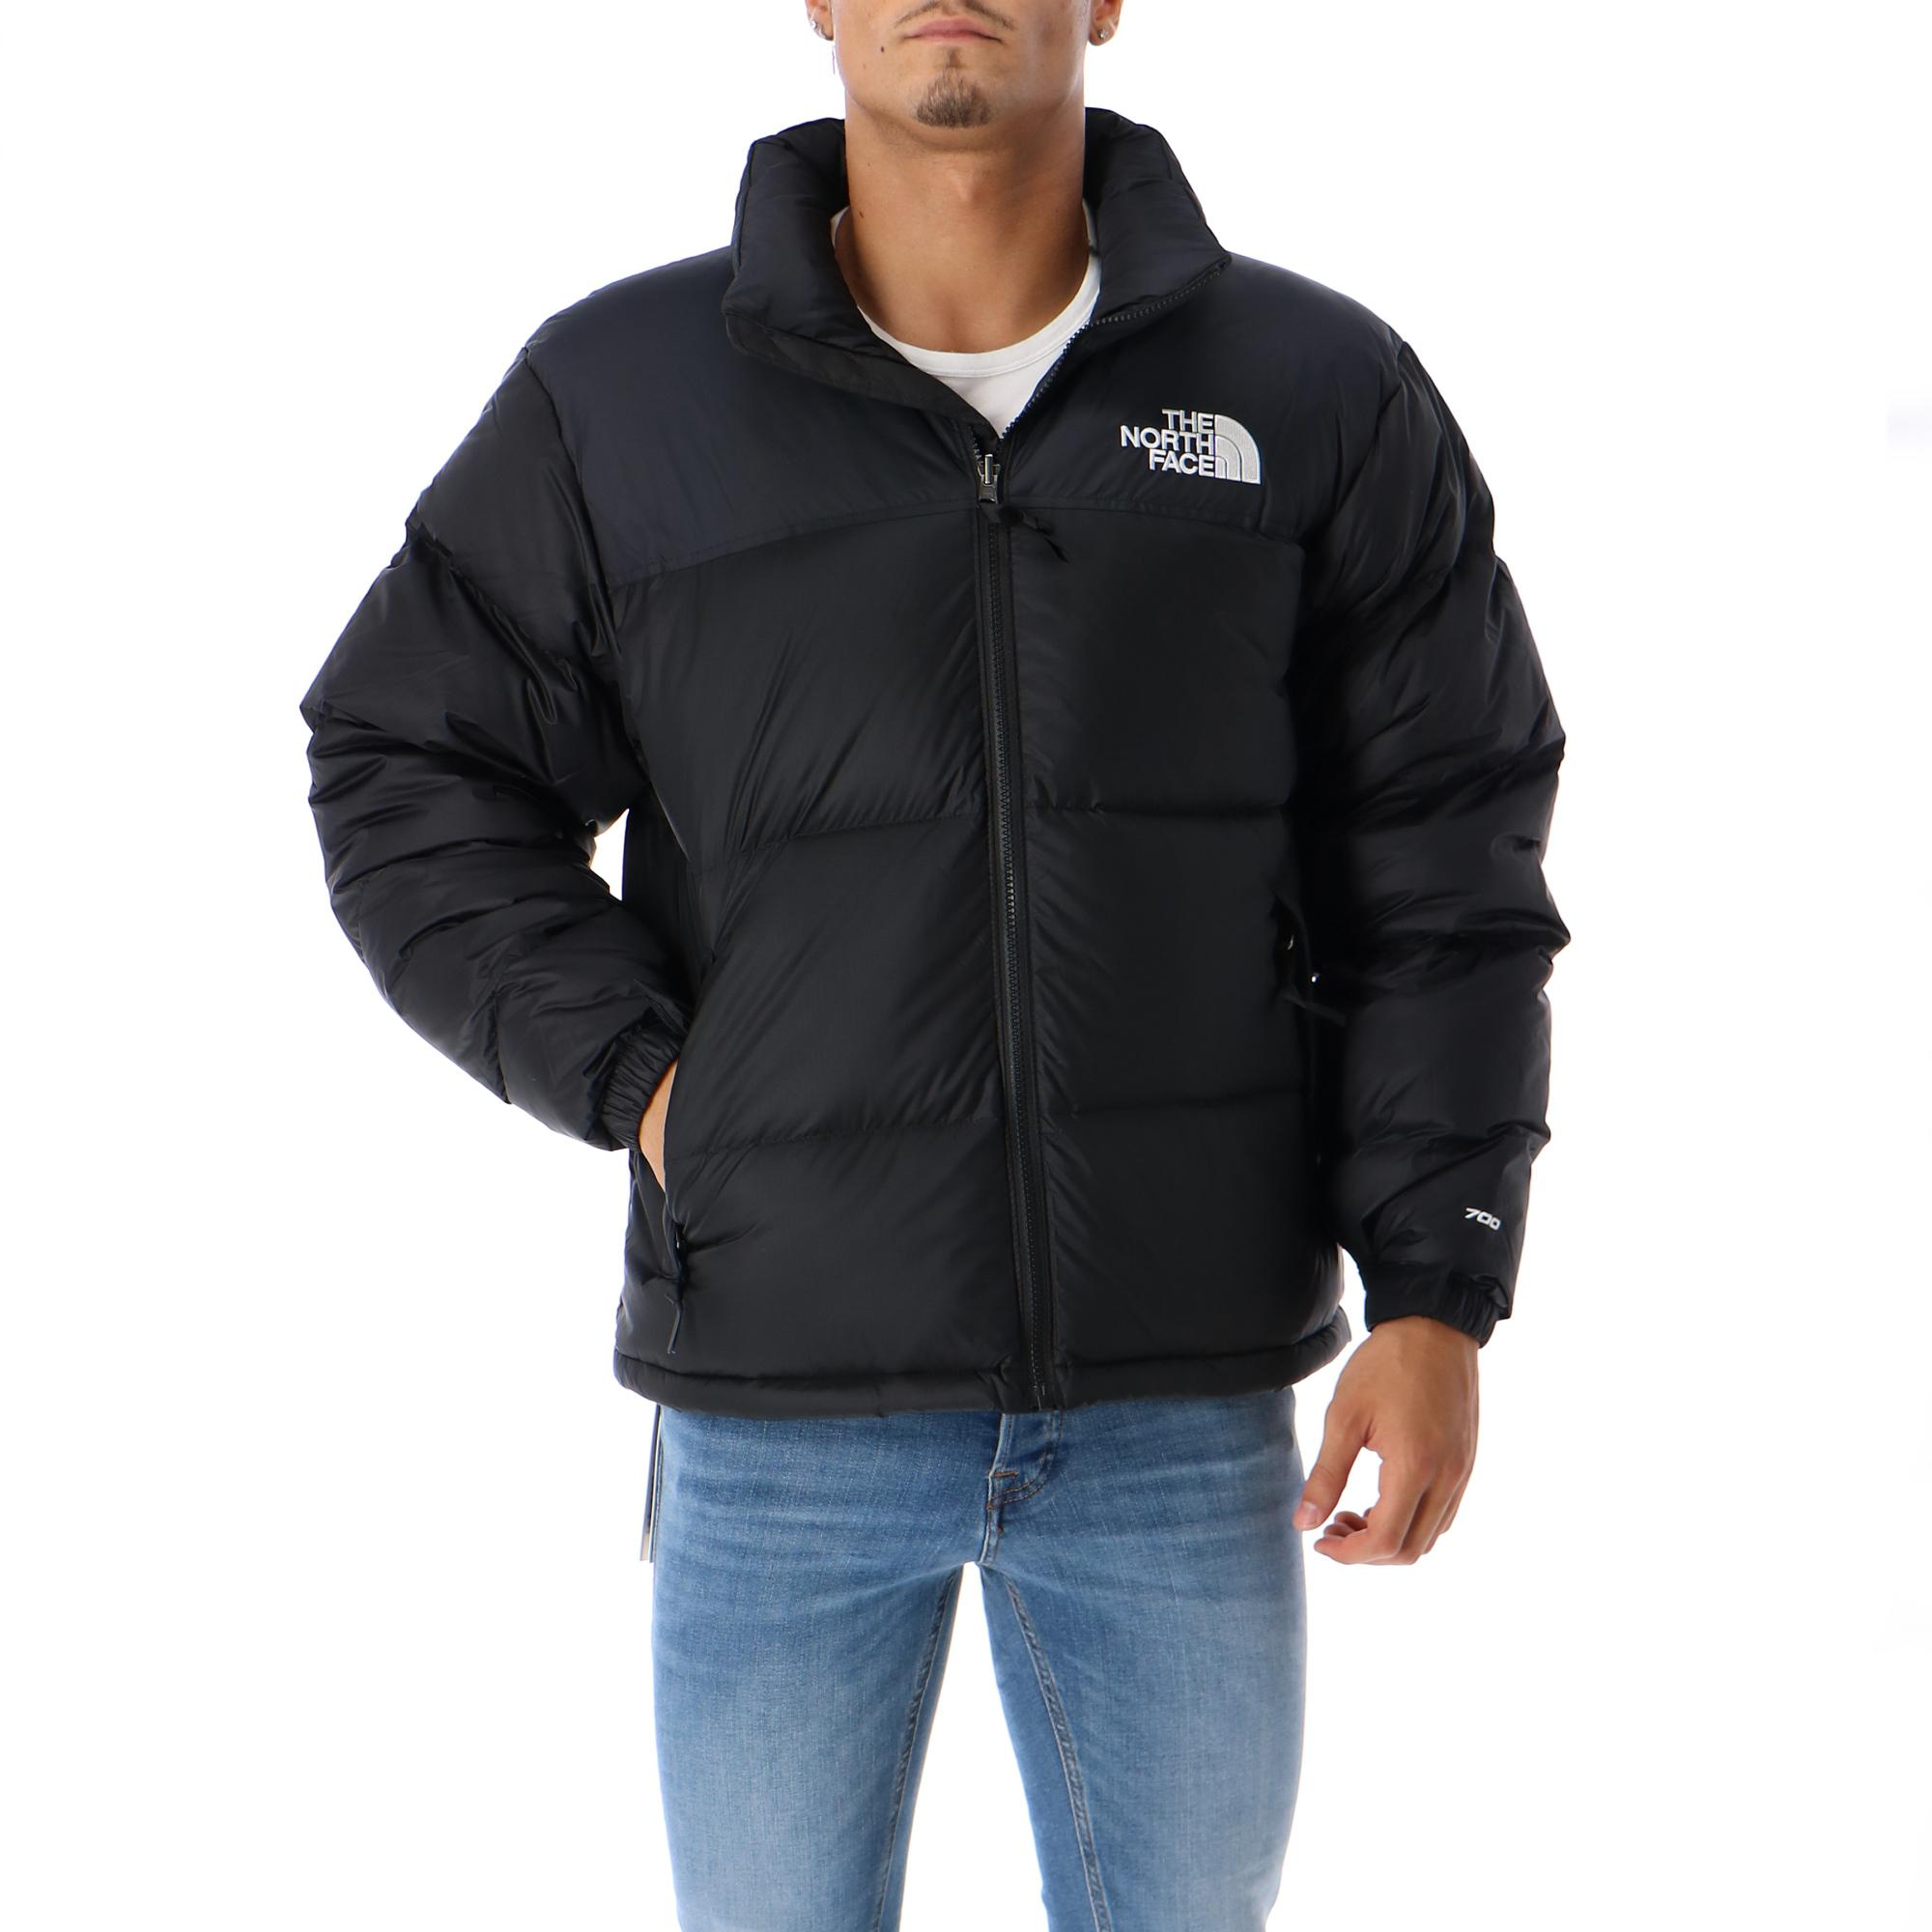 426f05eb1 THE NORTH FACE 1996 RETRO NUPTSE JACKET